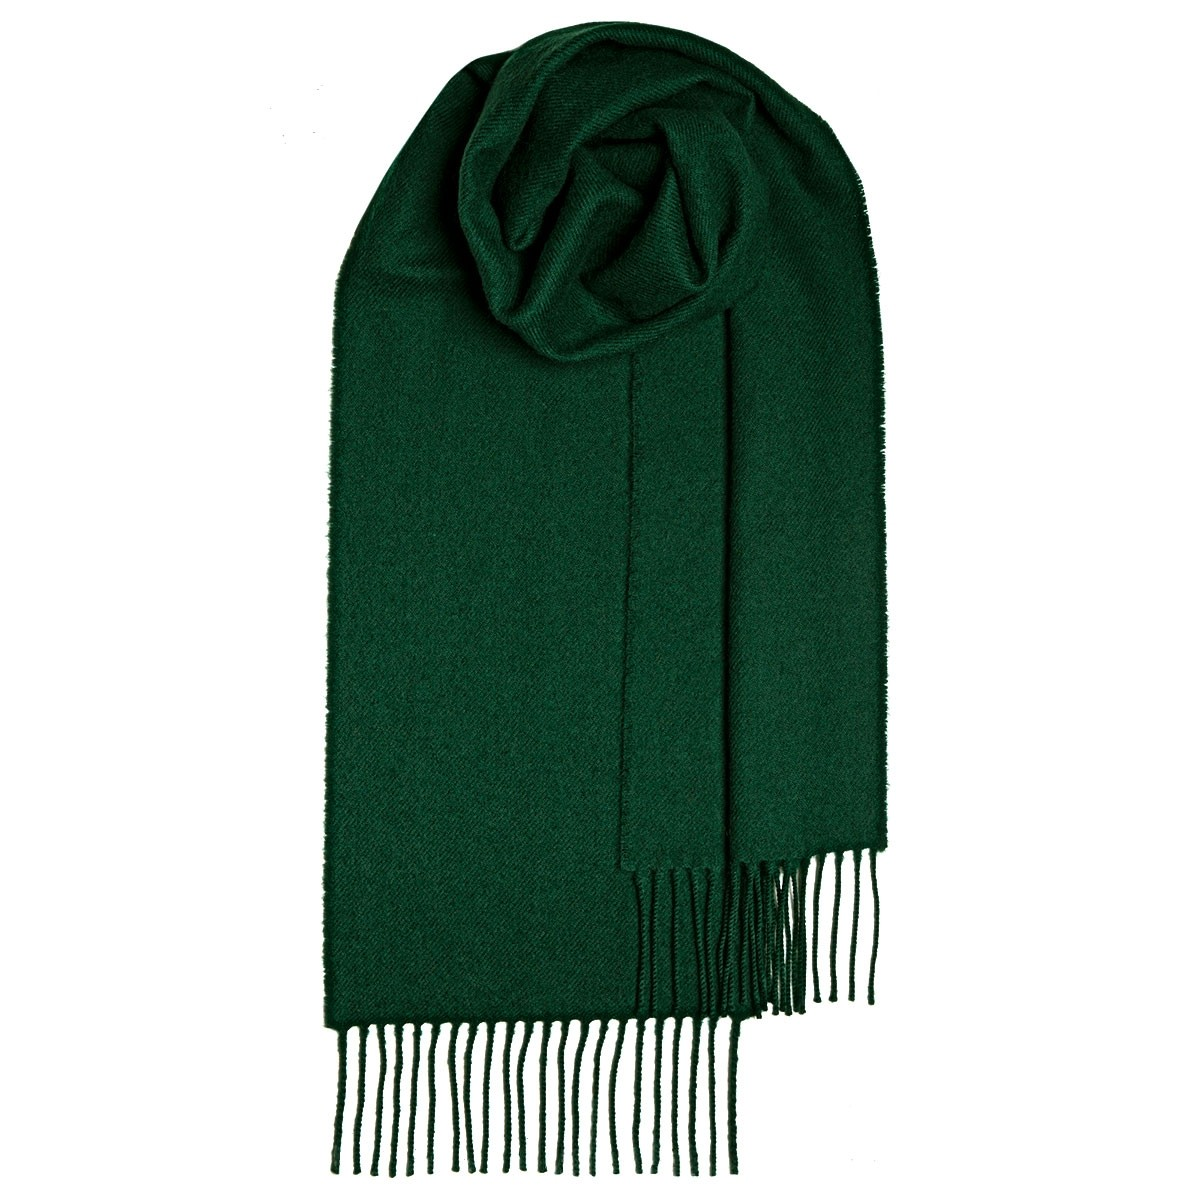 Bottle Green Plain Coloured Lambswool Scarf